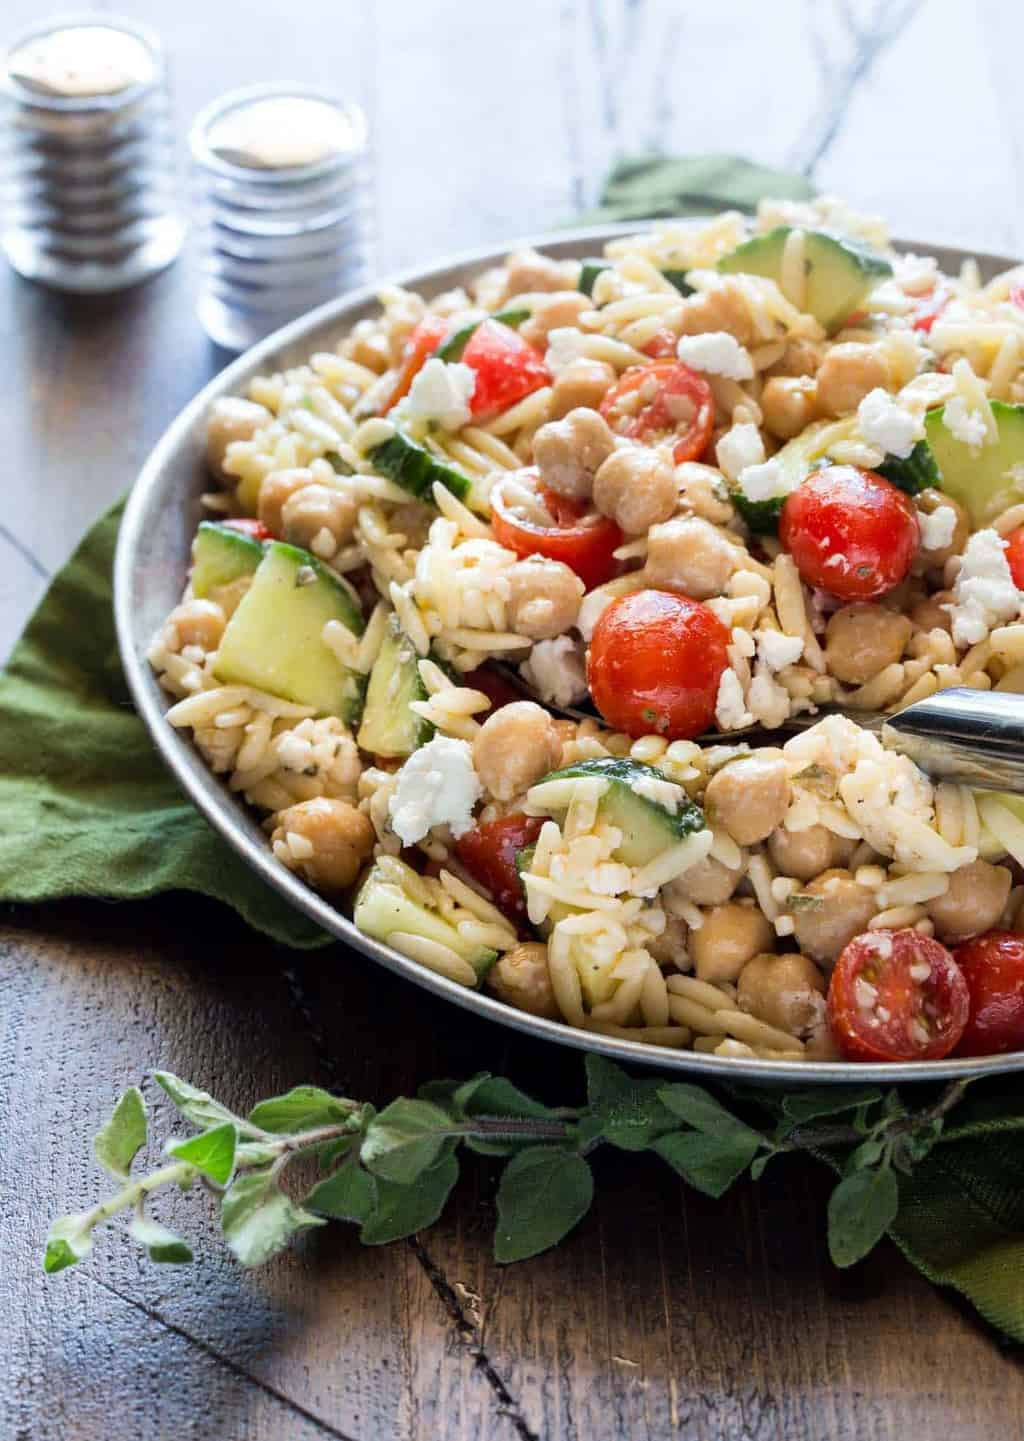 Silver bowl filled with Orzo and Chickpea Salad, cucumbers, tomatoes, fresh oregano and goat cheese.